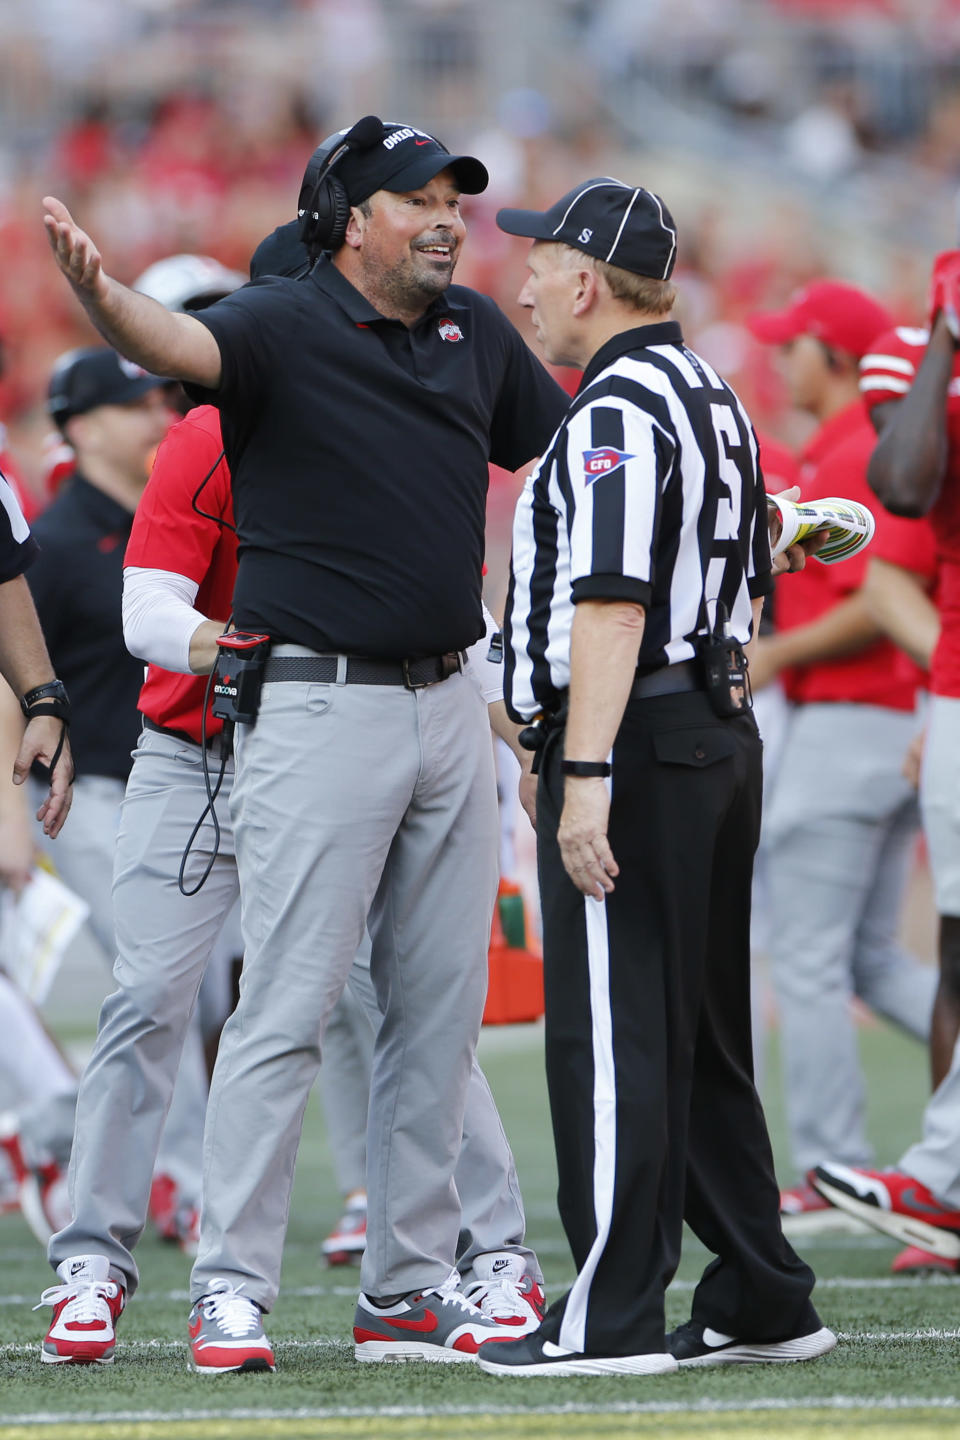 Ohio State head coach Ryan Day, left, questions a call by the referee during the first half of an NCAA college football game against Tulsa, Saturday, Sept. 18, 2021, in Columbus, Ohio. (AP Photo/Jay LaPrete)